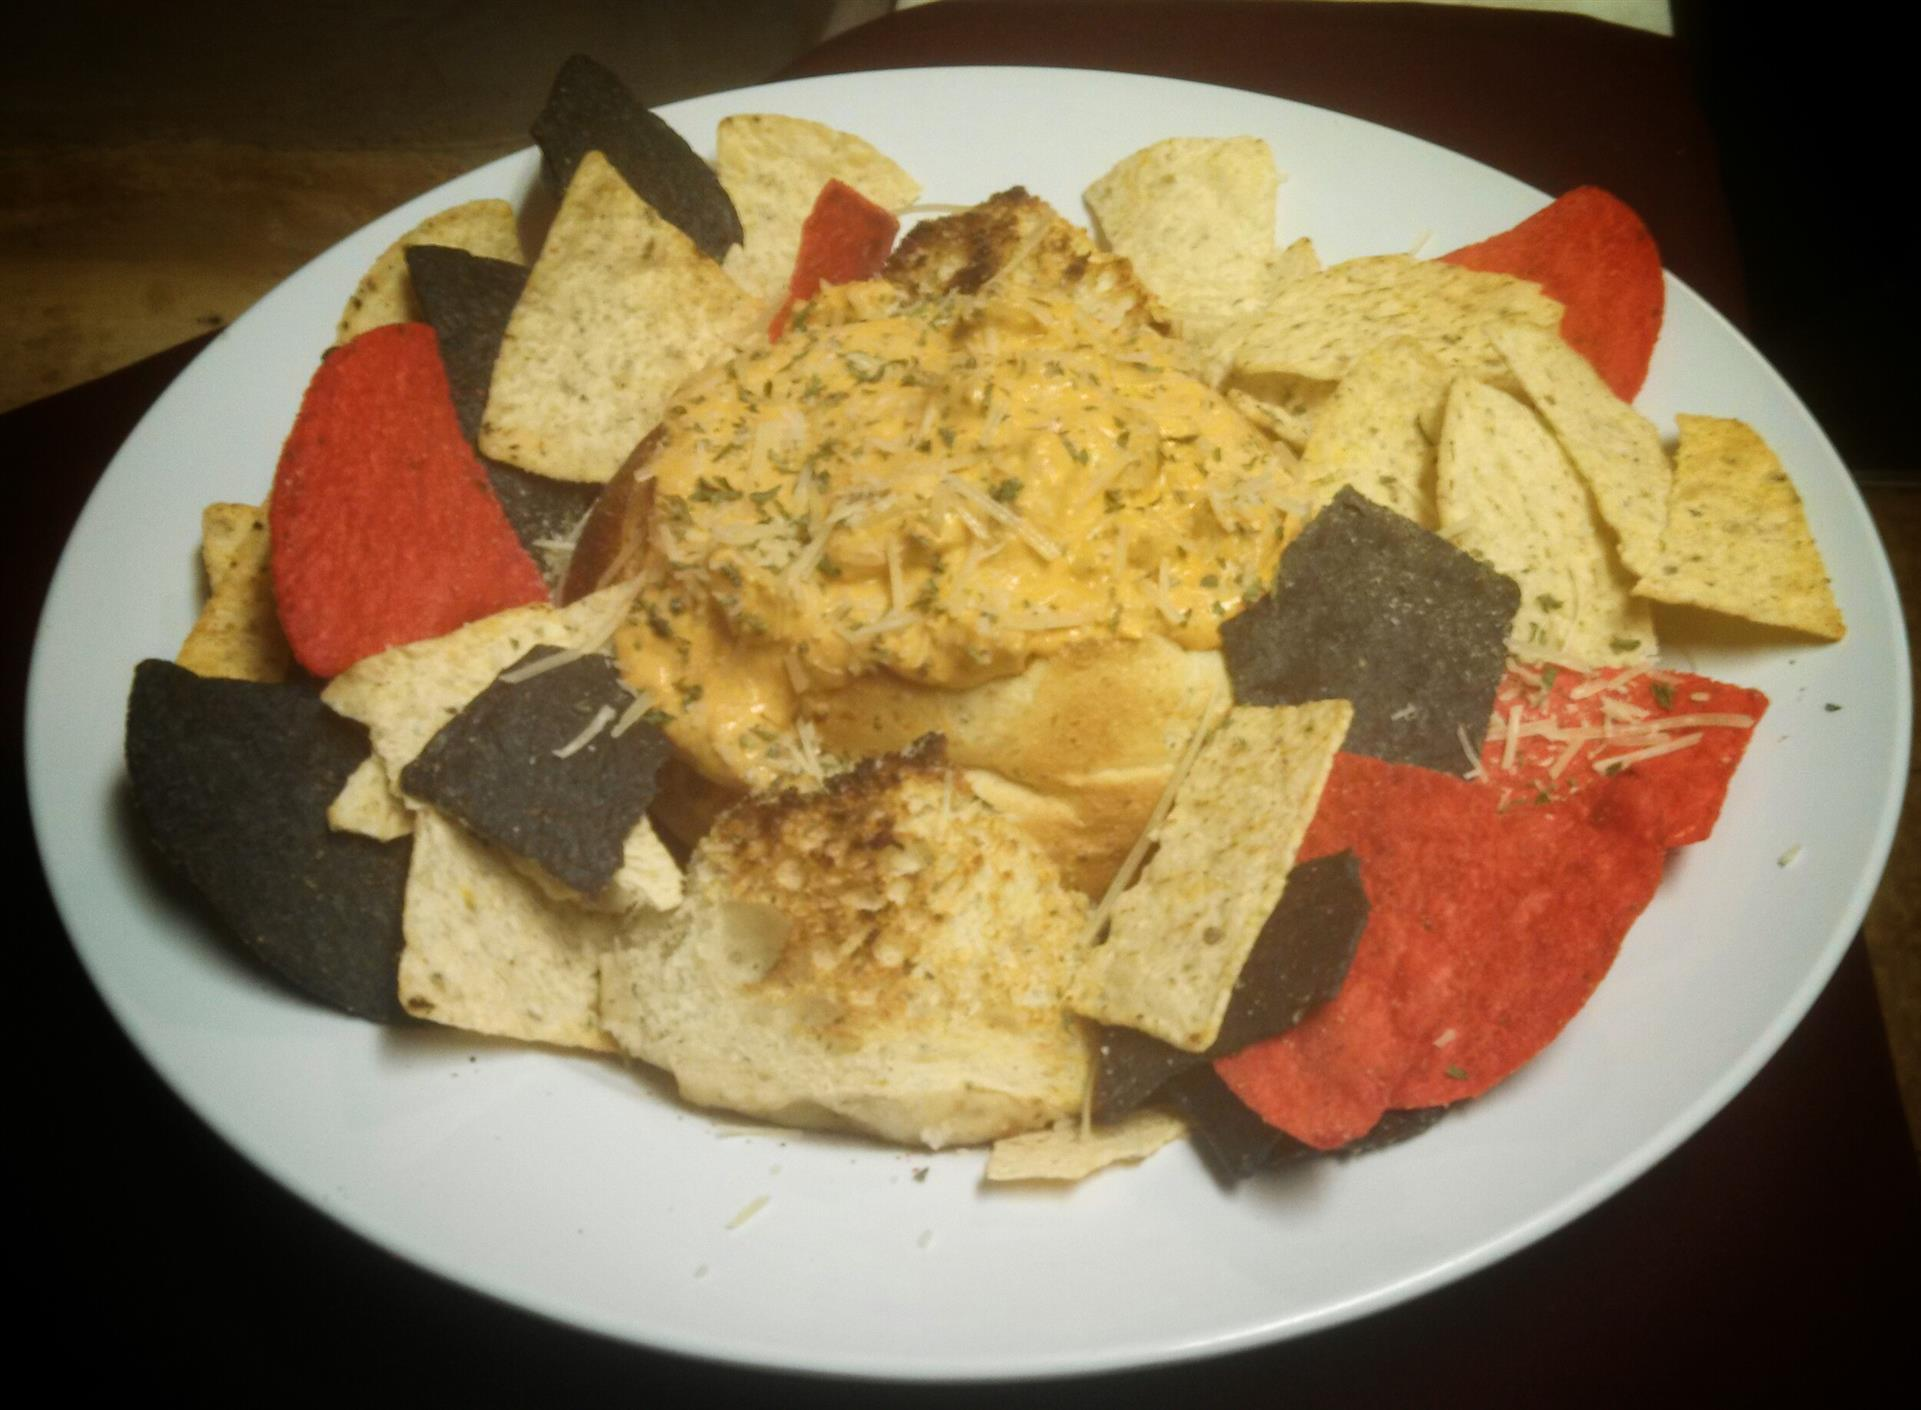 plate of tortilla chips with dip in the center of the plate